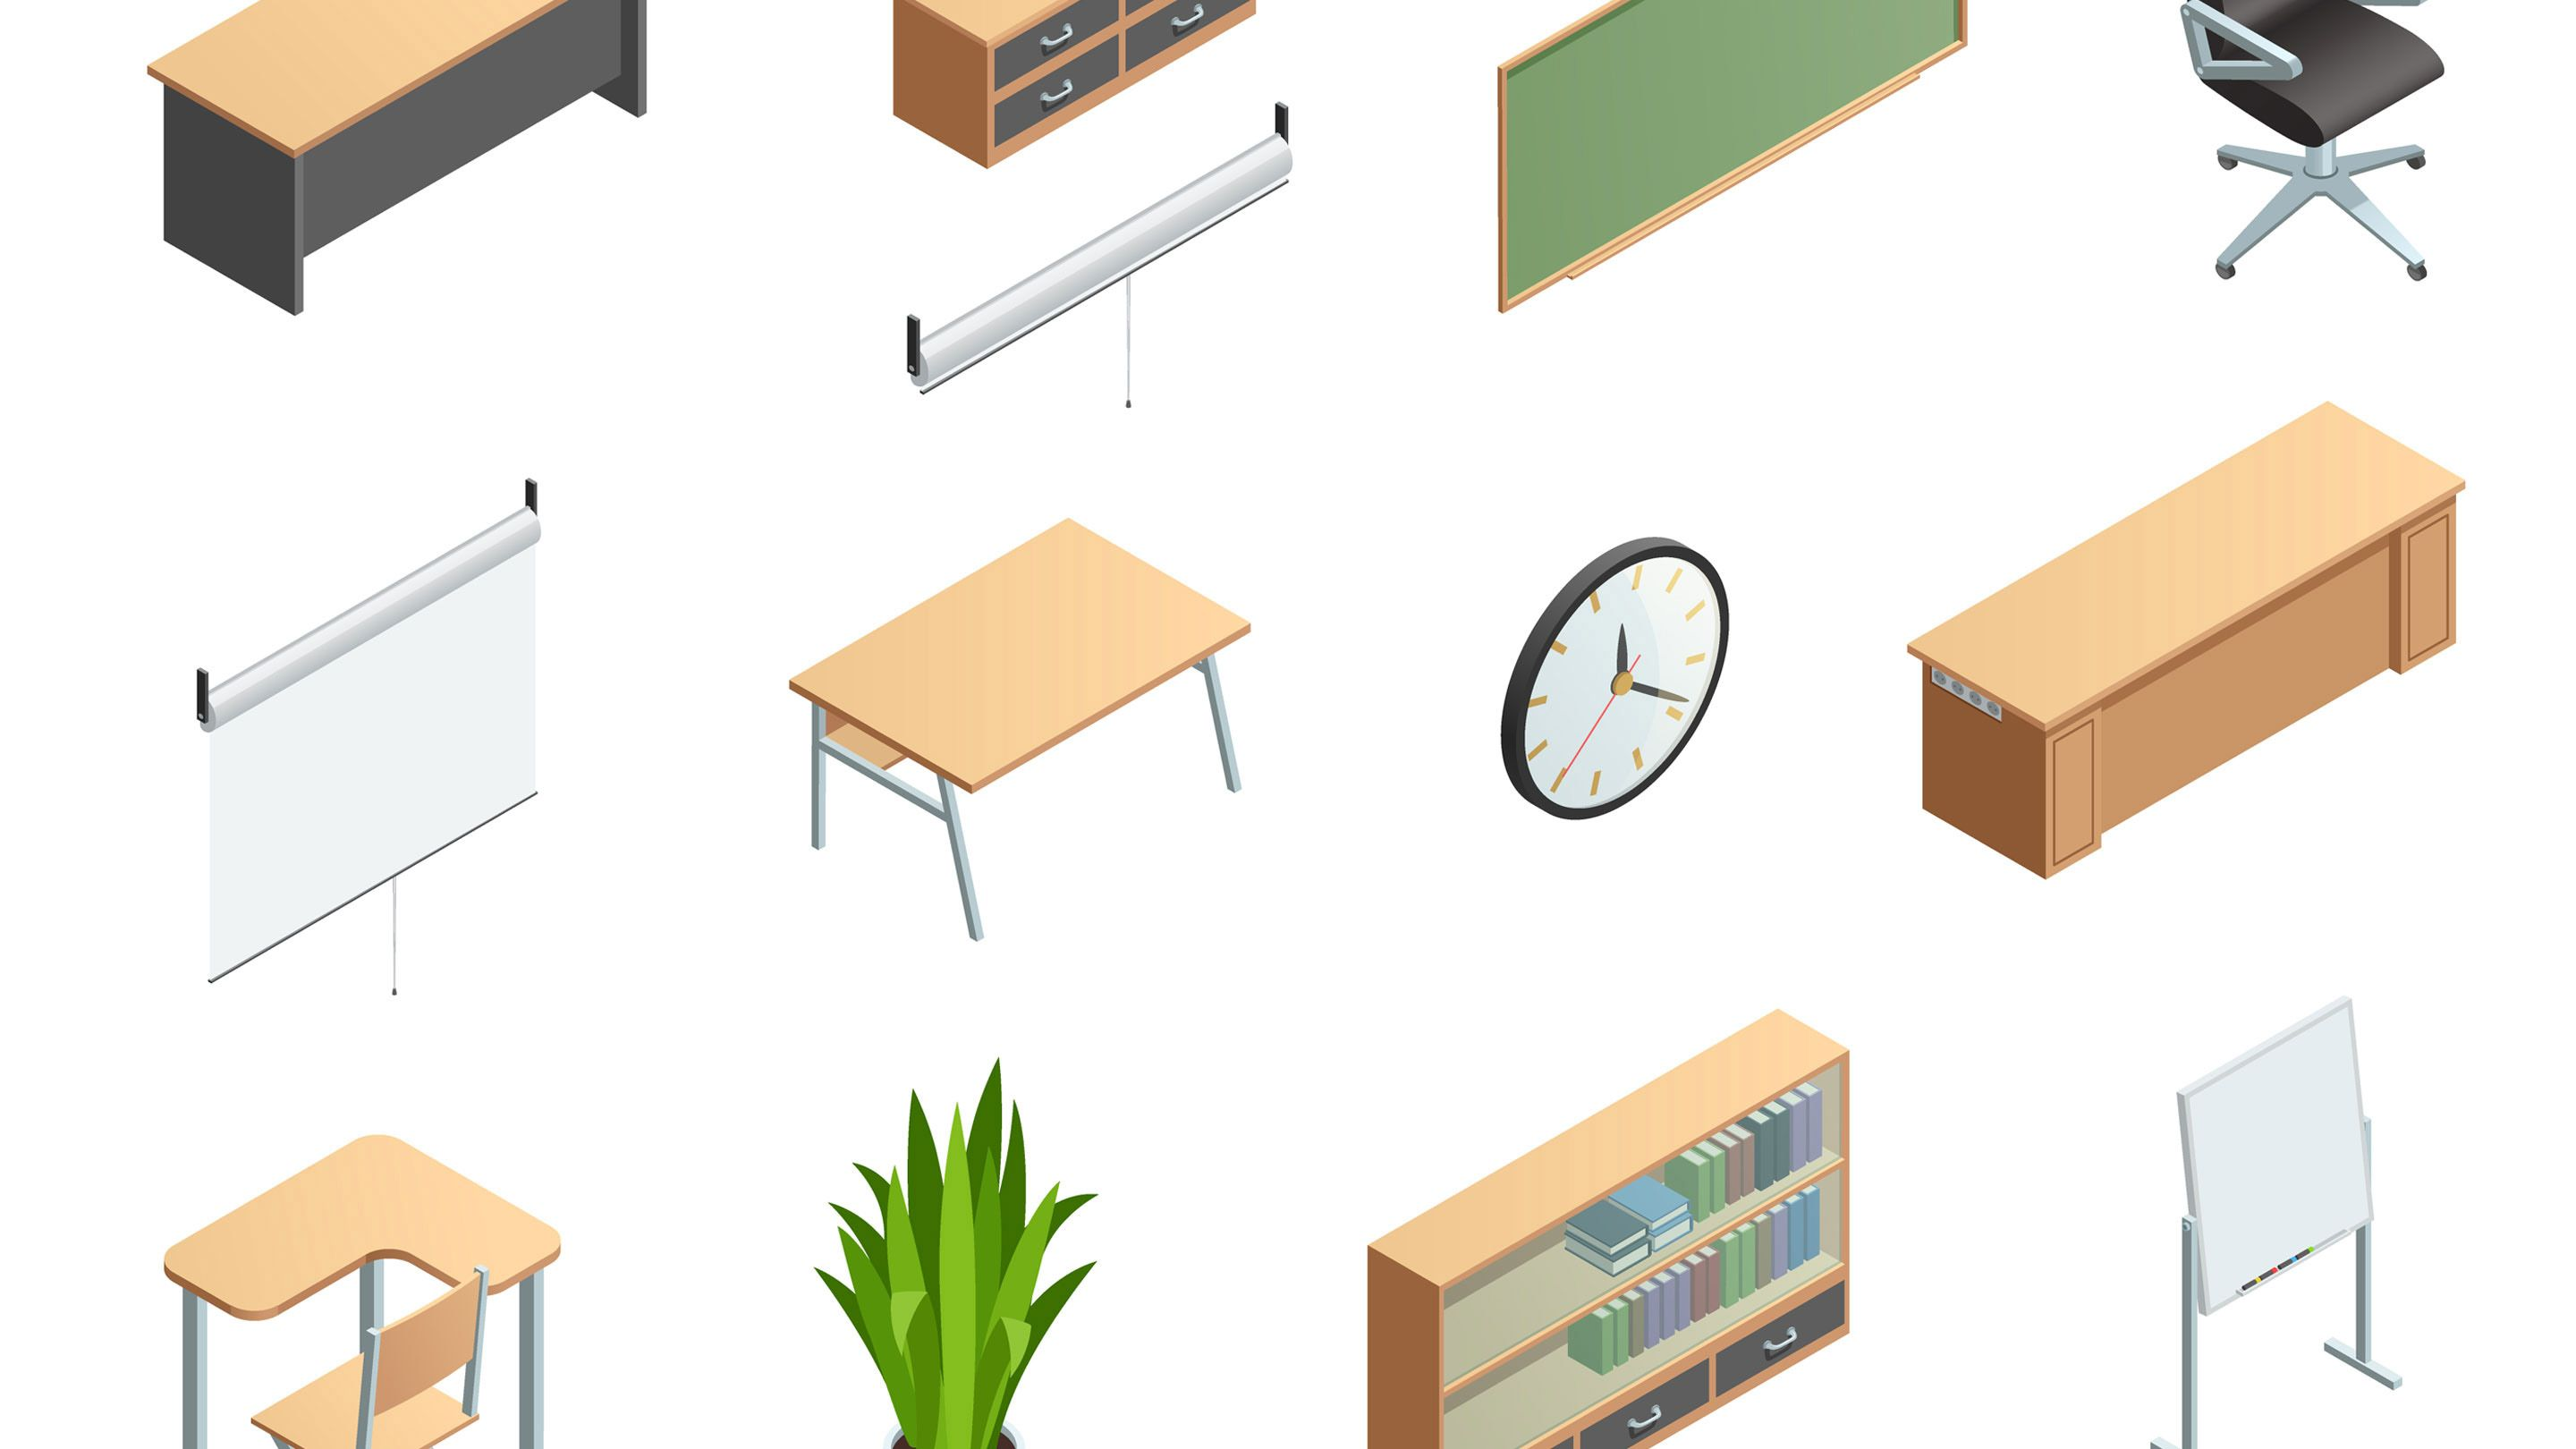 Floating images of desks, tables, chairs, and clocks